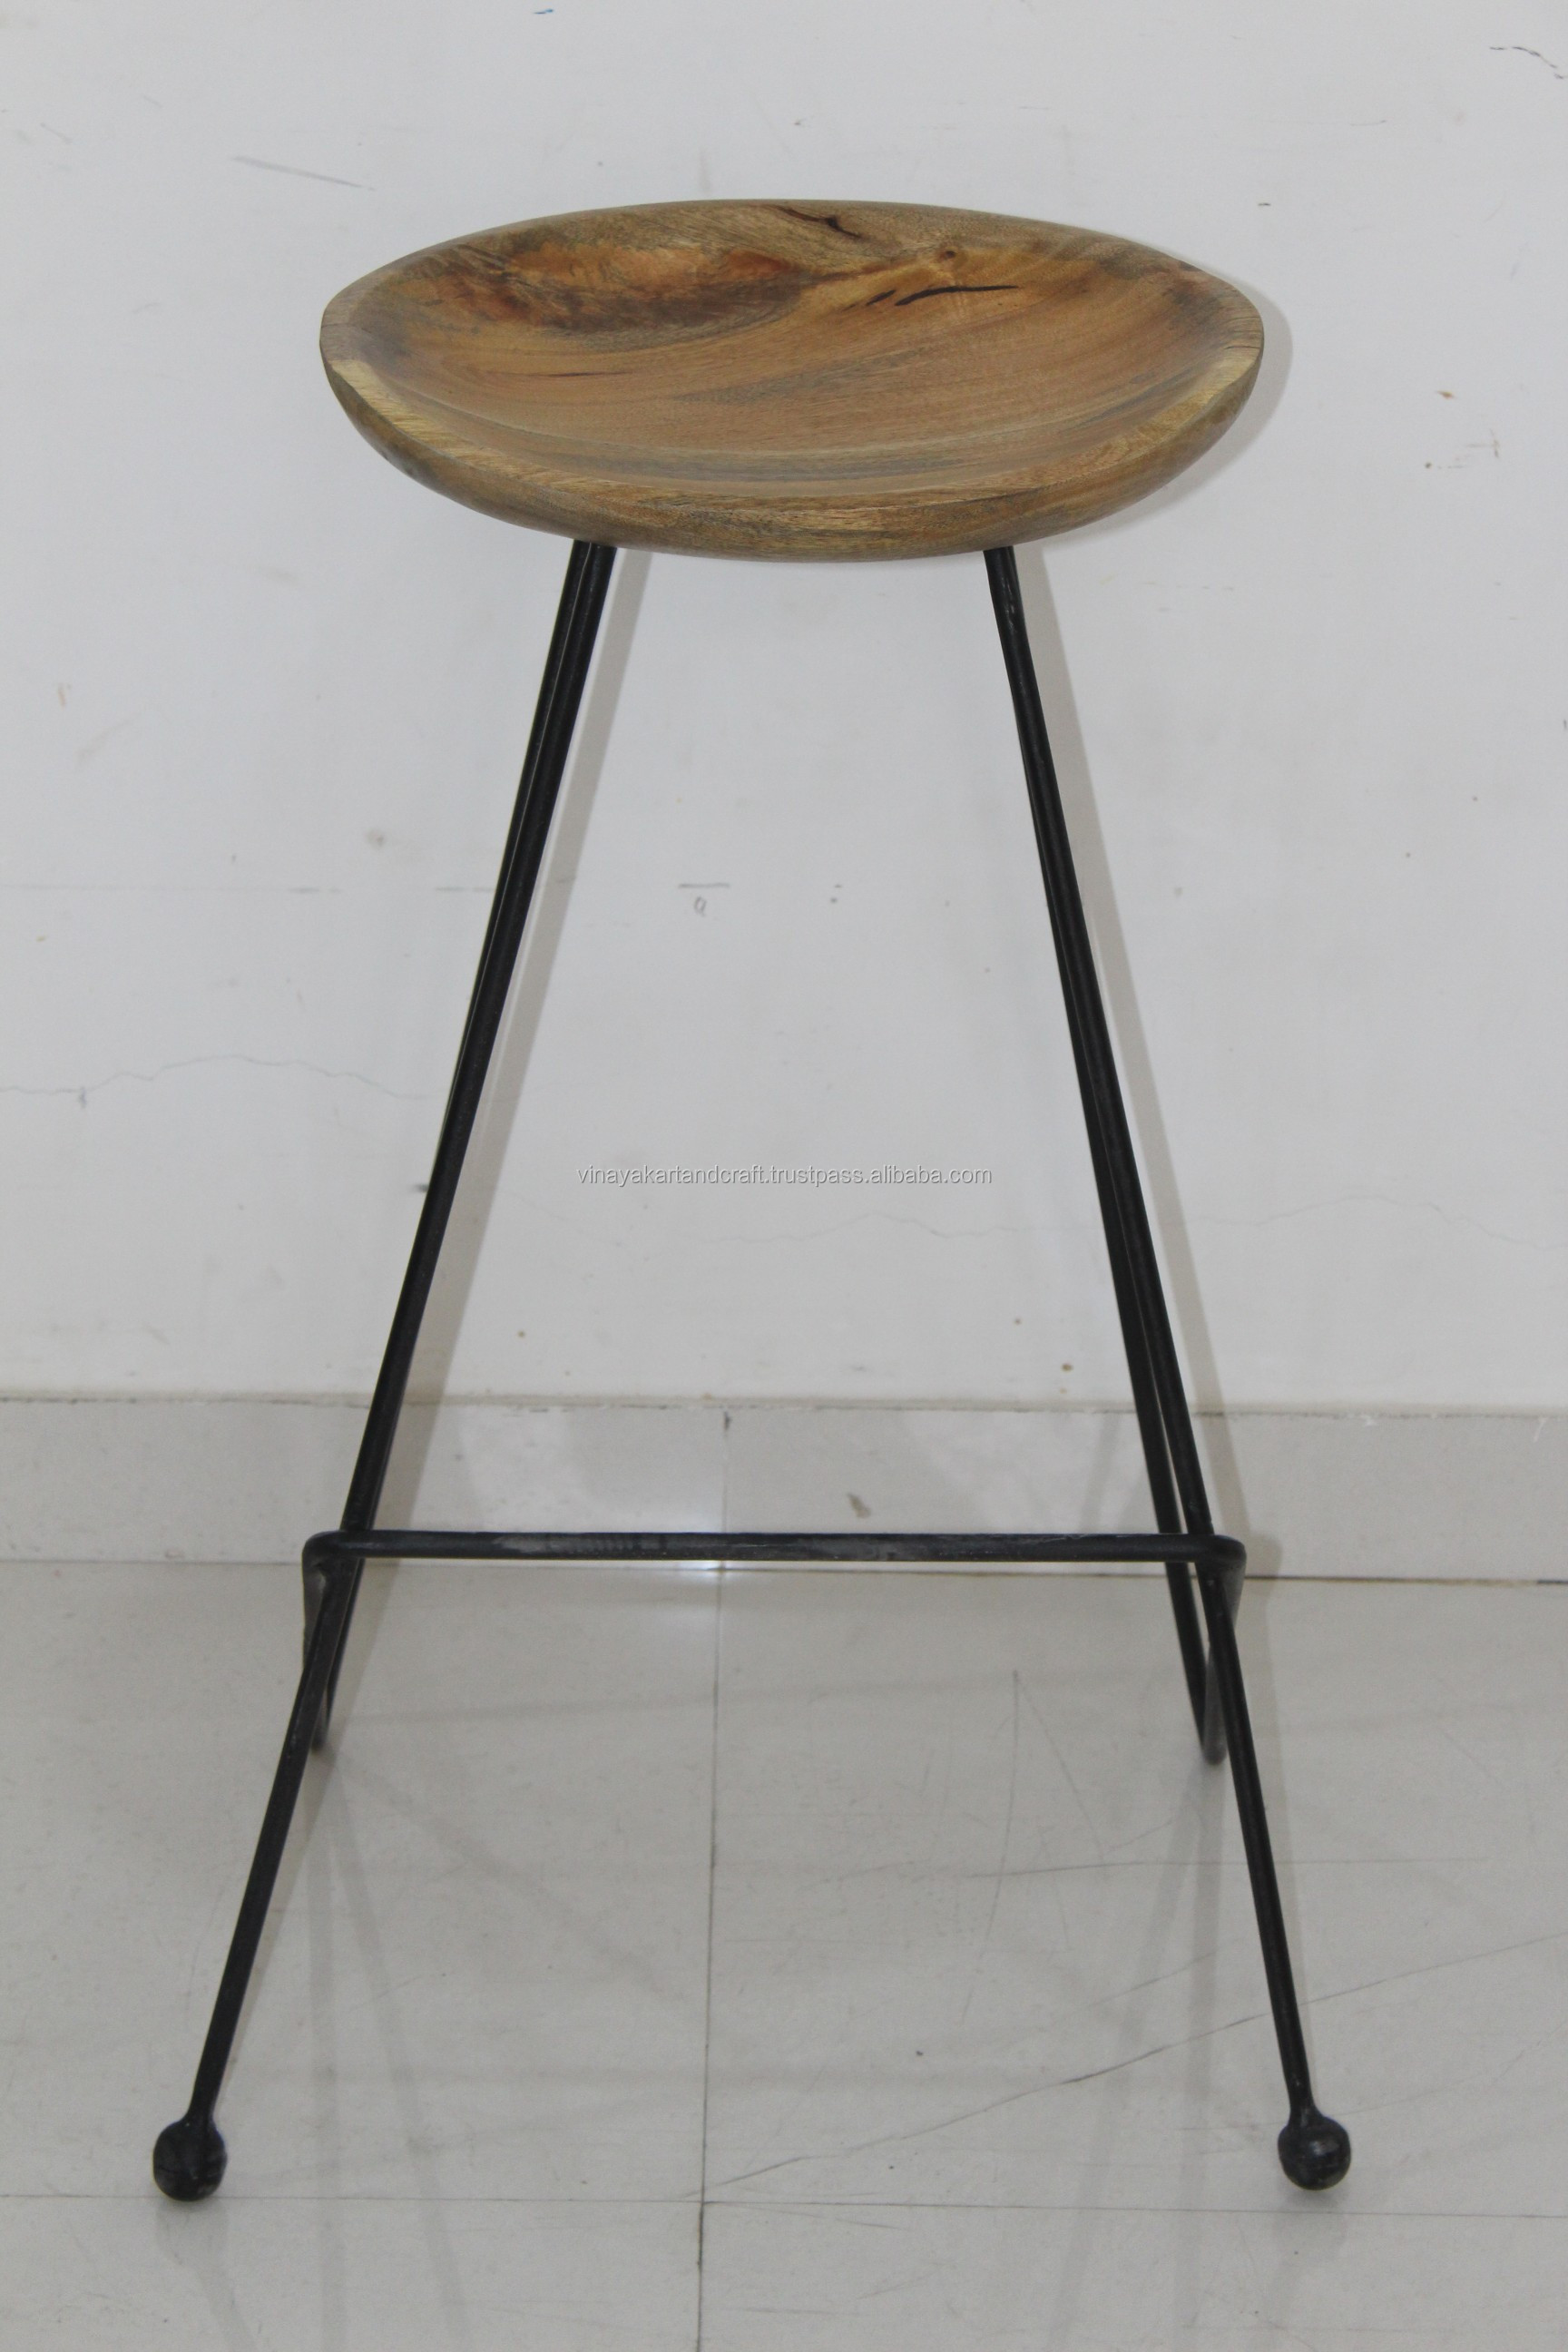 Tremendous Vintage Industrial Bar Stool New Original Modern Wooden Seat Metal Wire Bar Stool Jodhpur Antique Wooden Metal Bar Stool Buy Wooden Bar Stool New Camellatalisay Diy Chair Ideas Camellatalisaycom